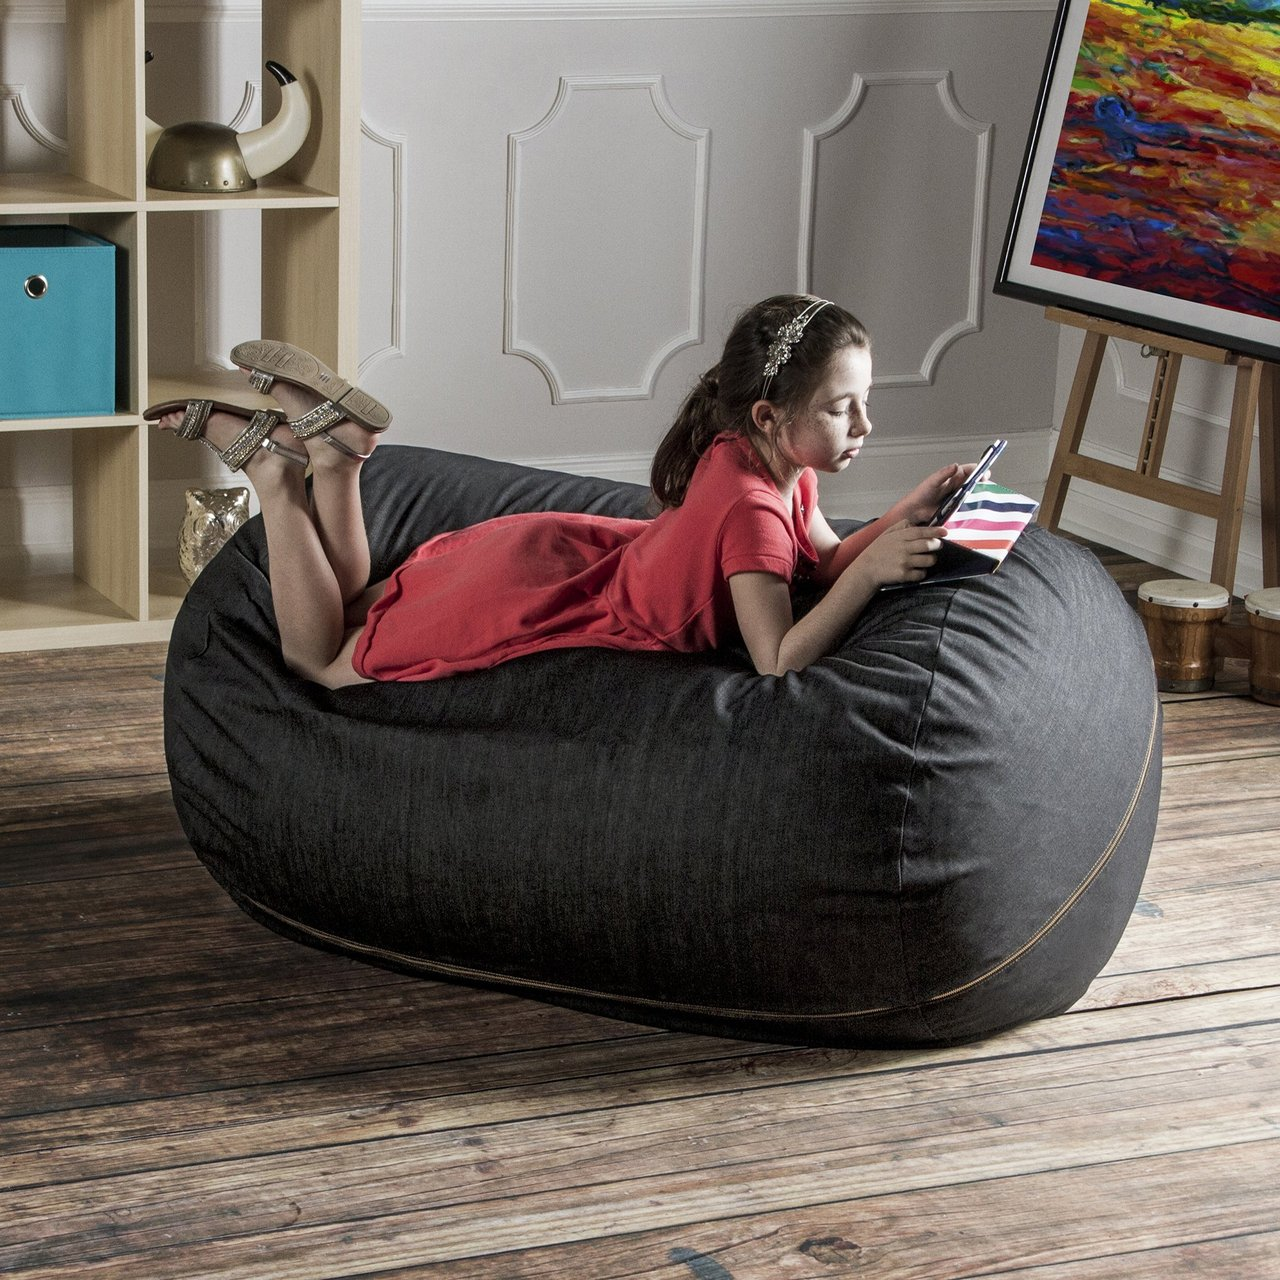 Jaxx Denim Bean Bag Lounger